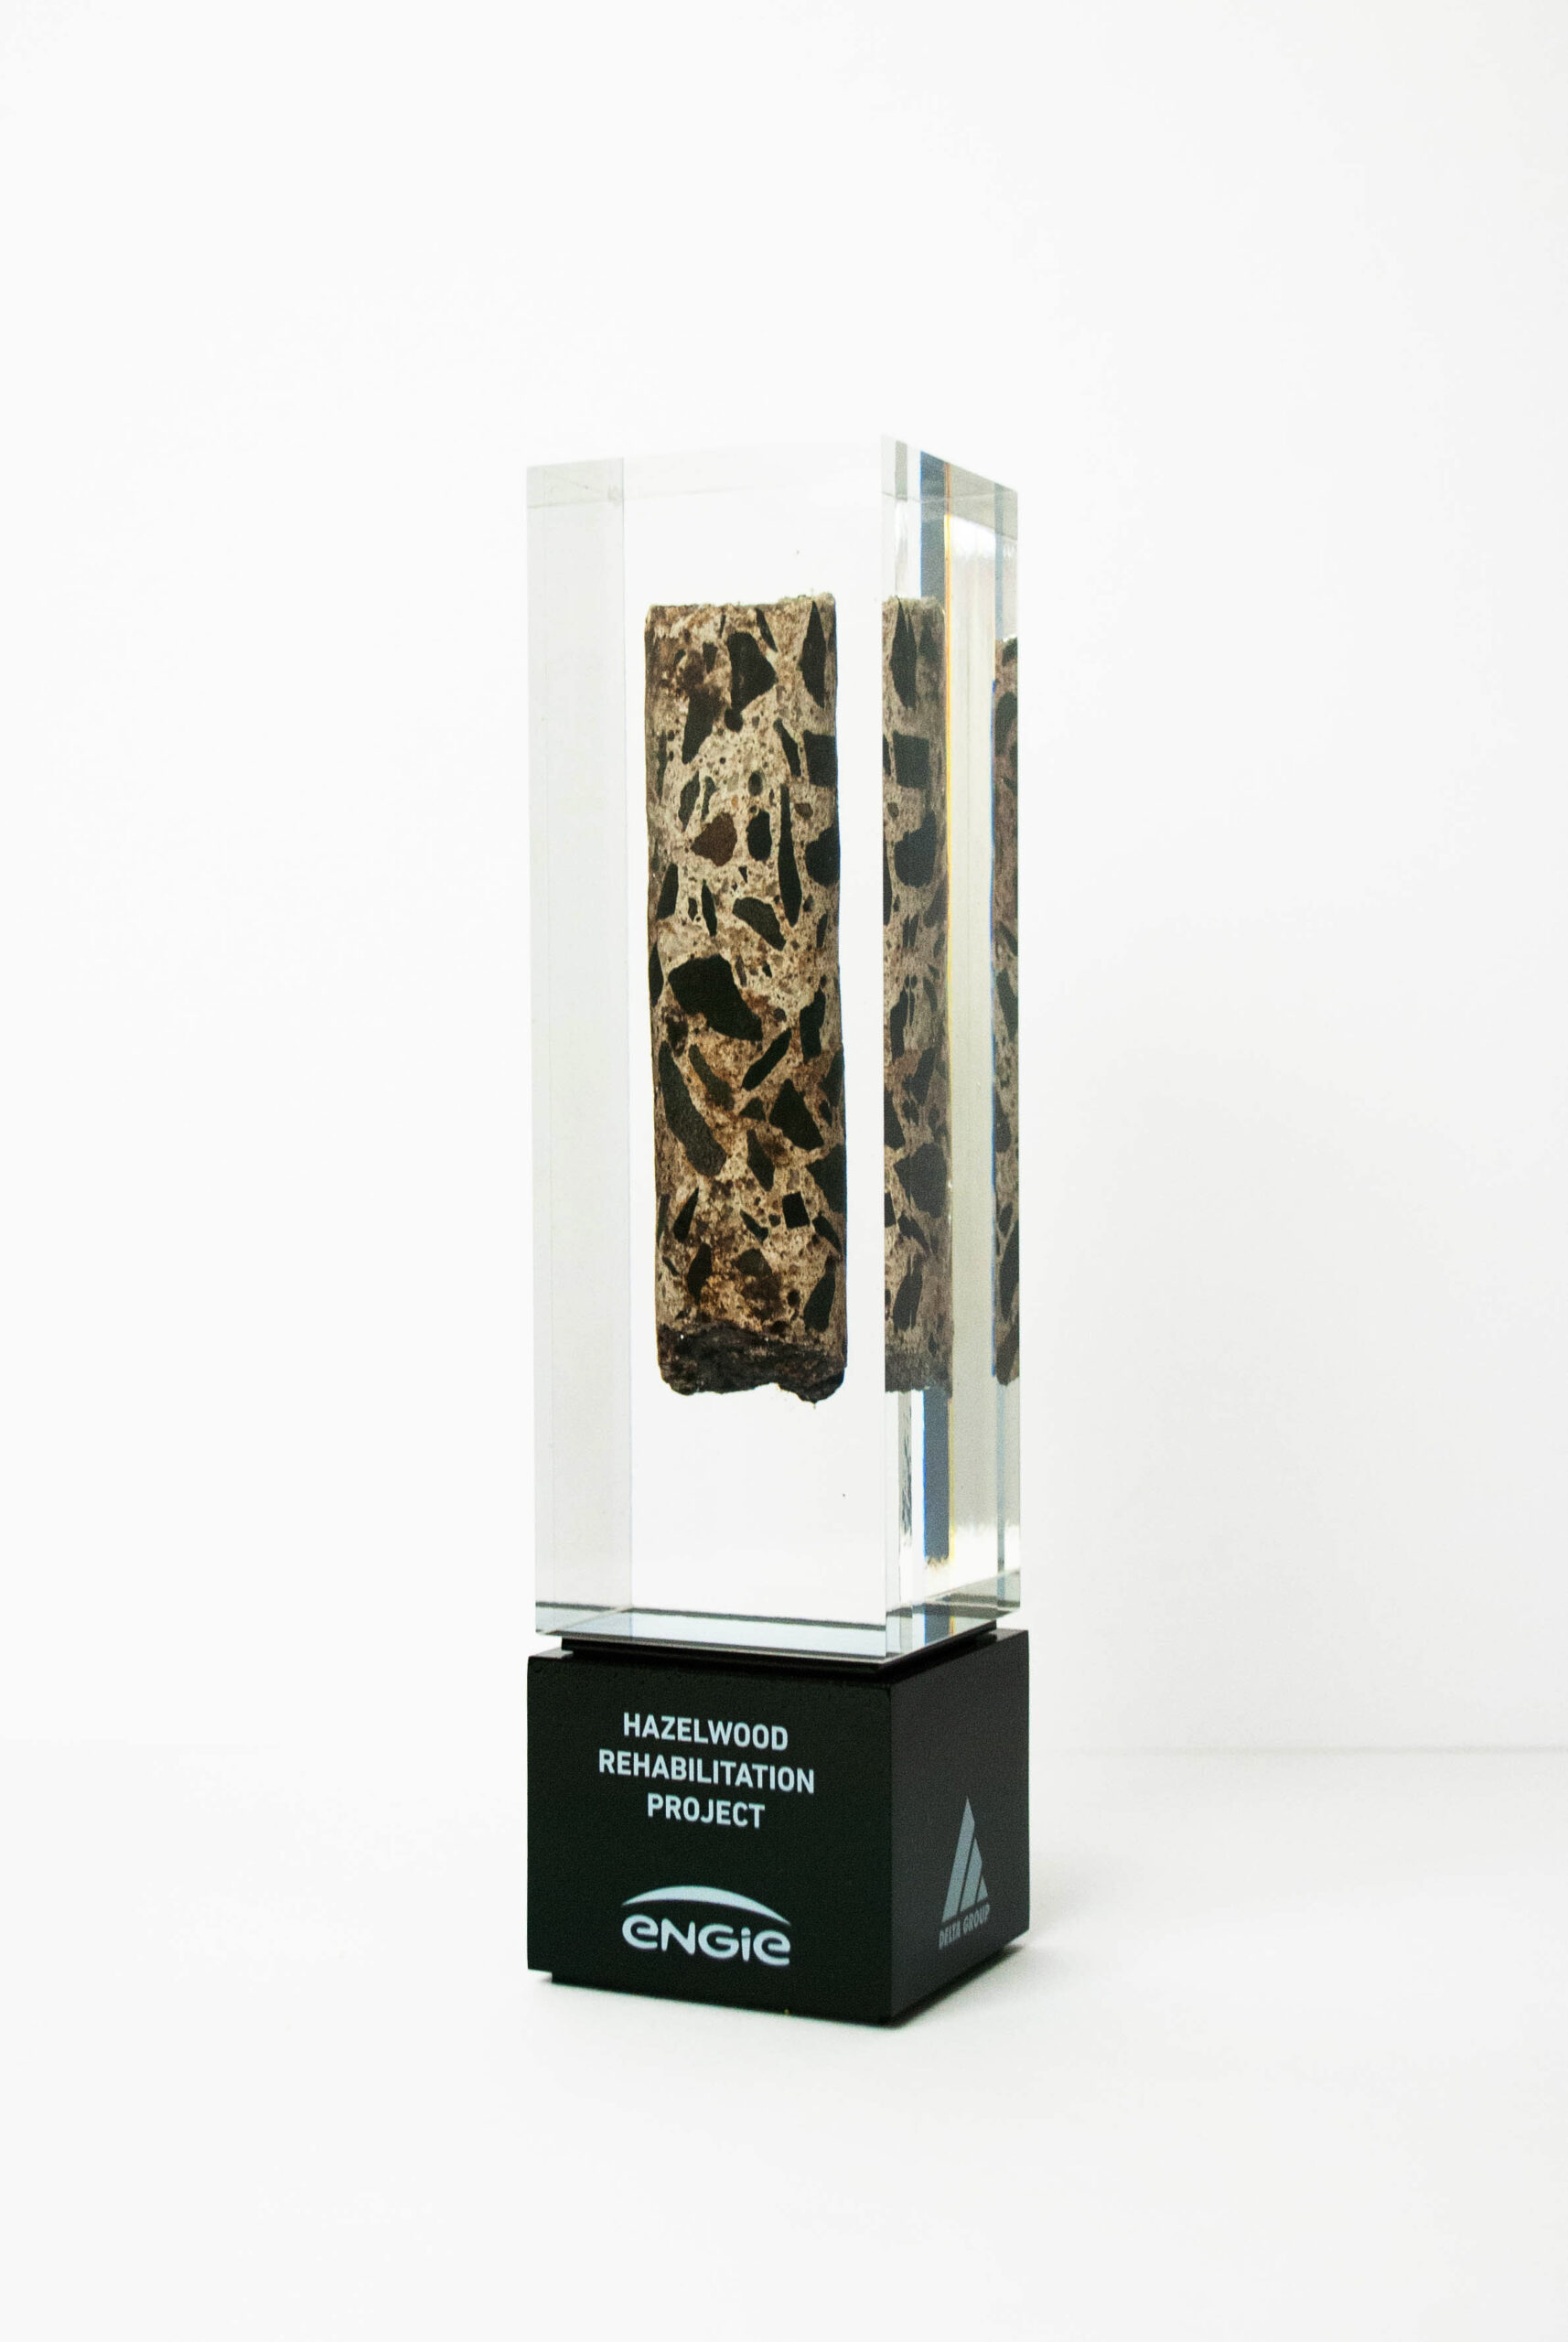 The Engie Awards